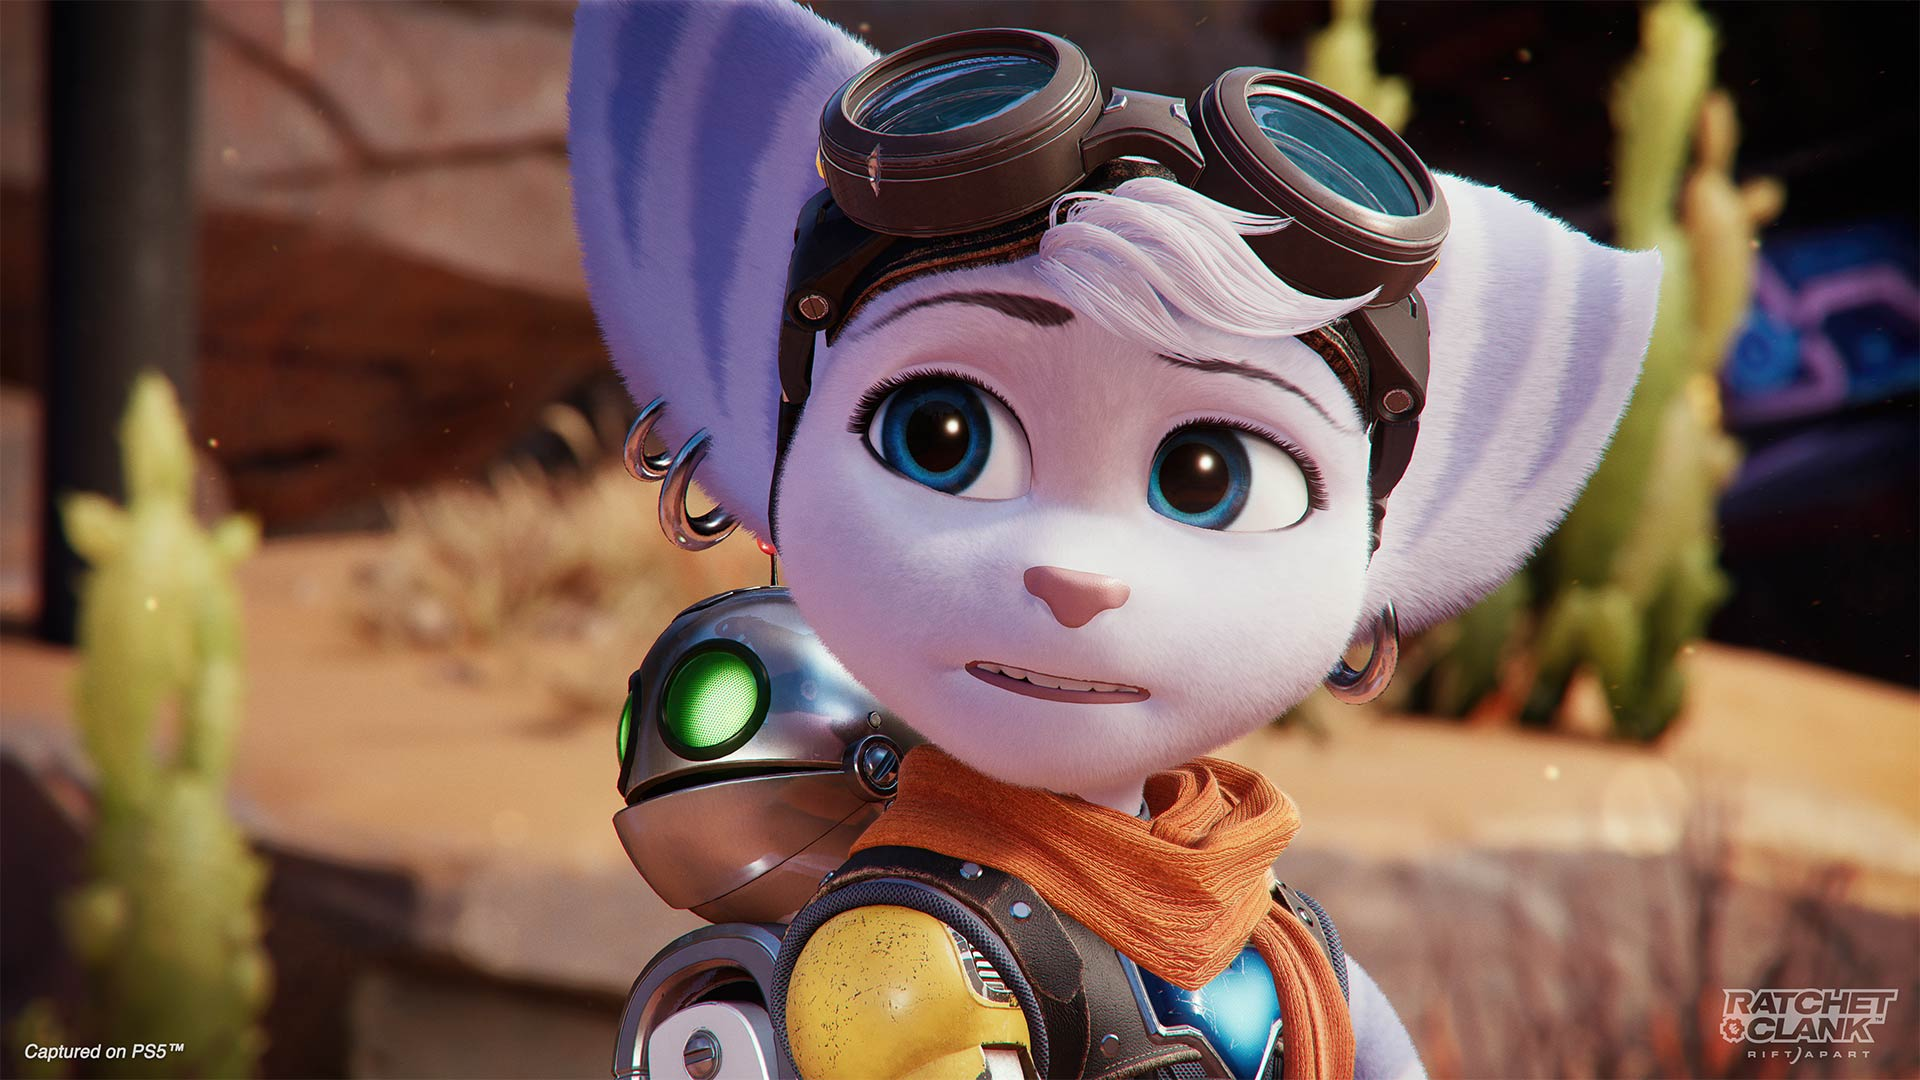 Ratchet & Clank Rivet and Clank